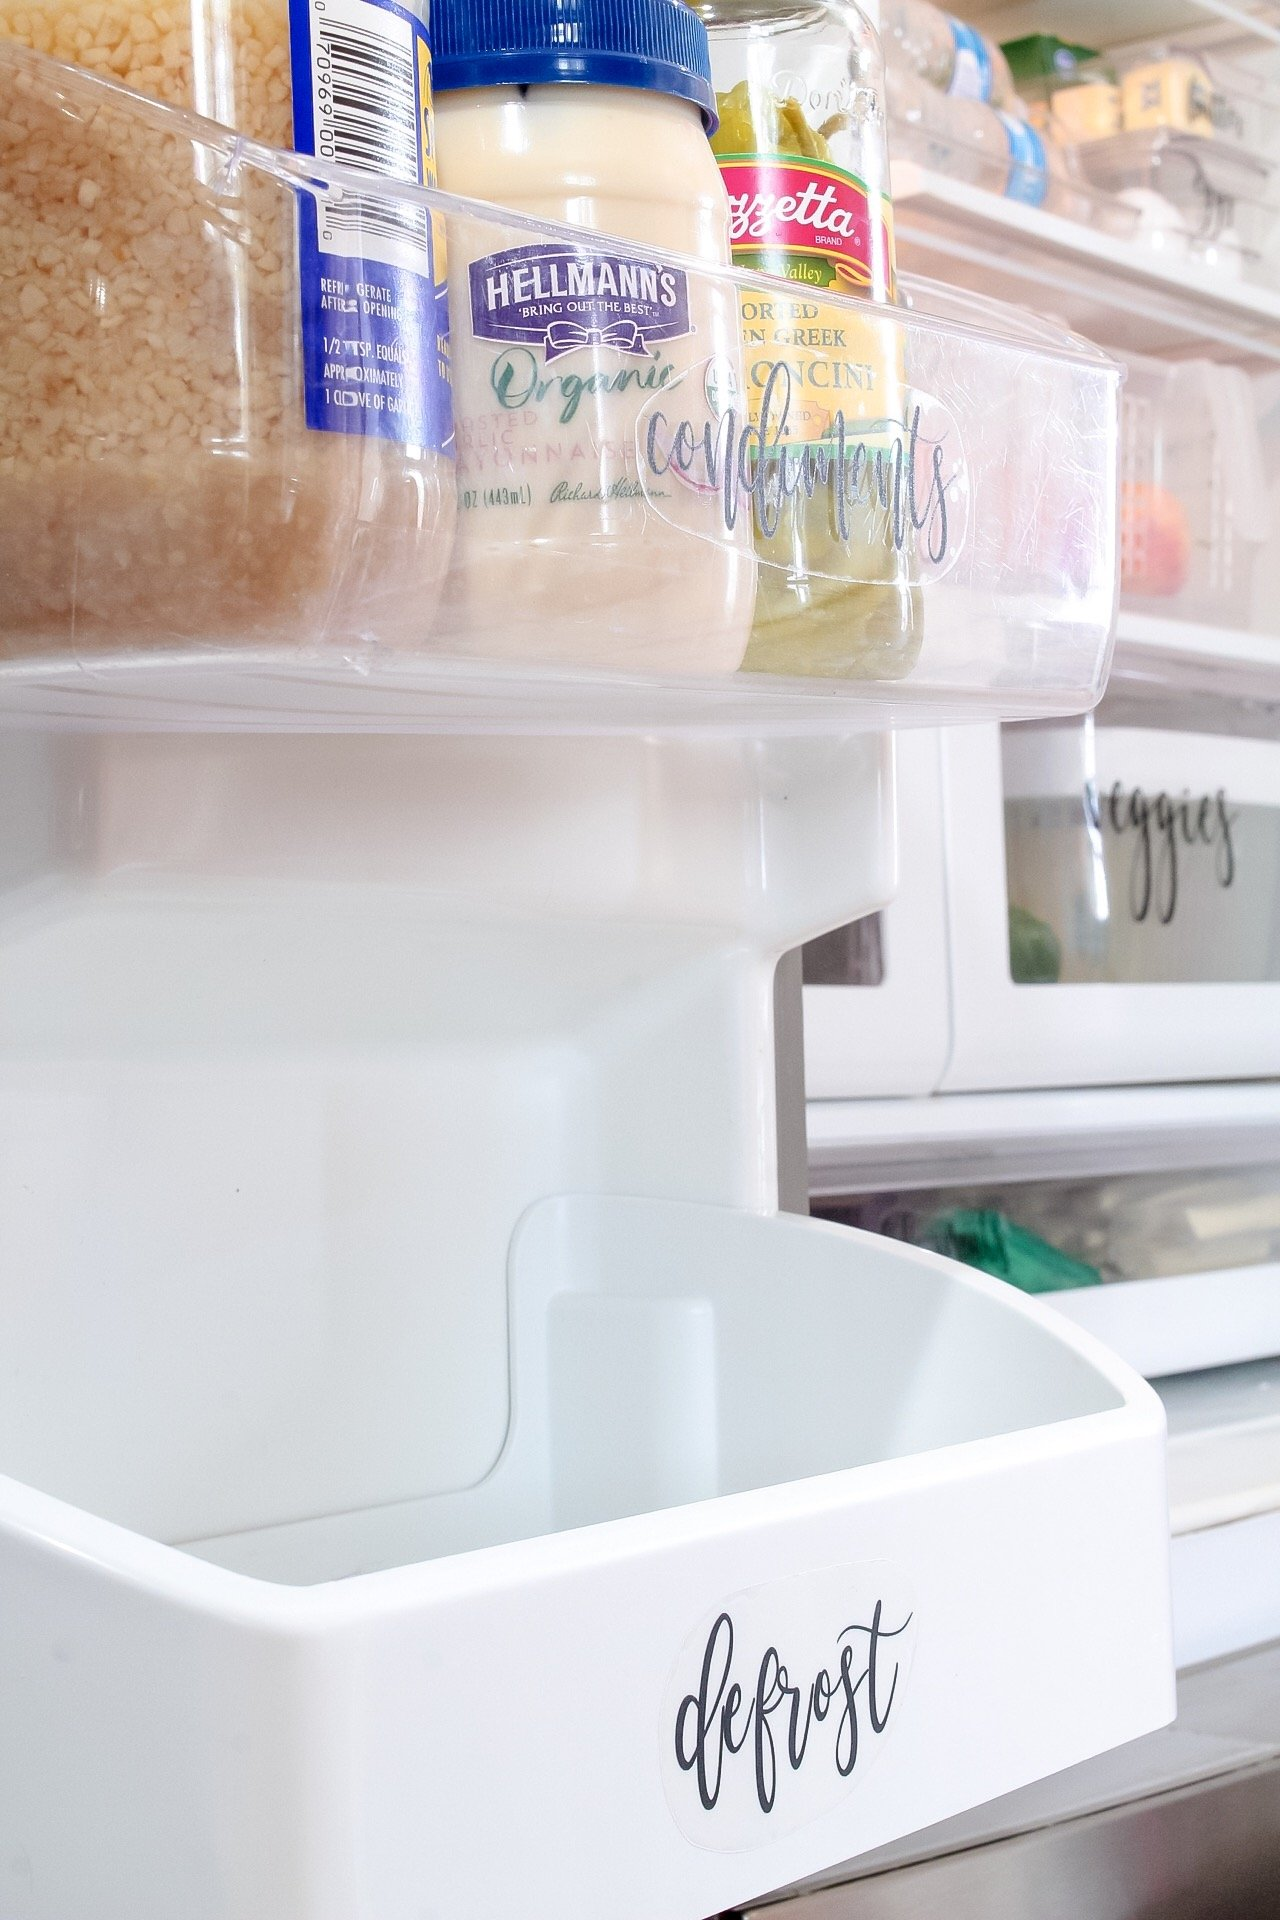 Left fridge door storage with condiments section and defrost section for frozen meats